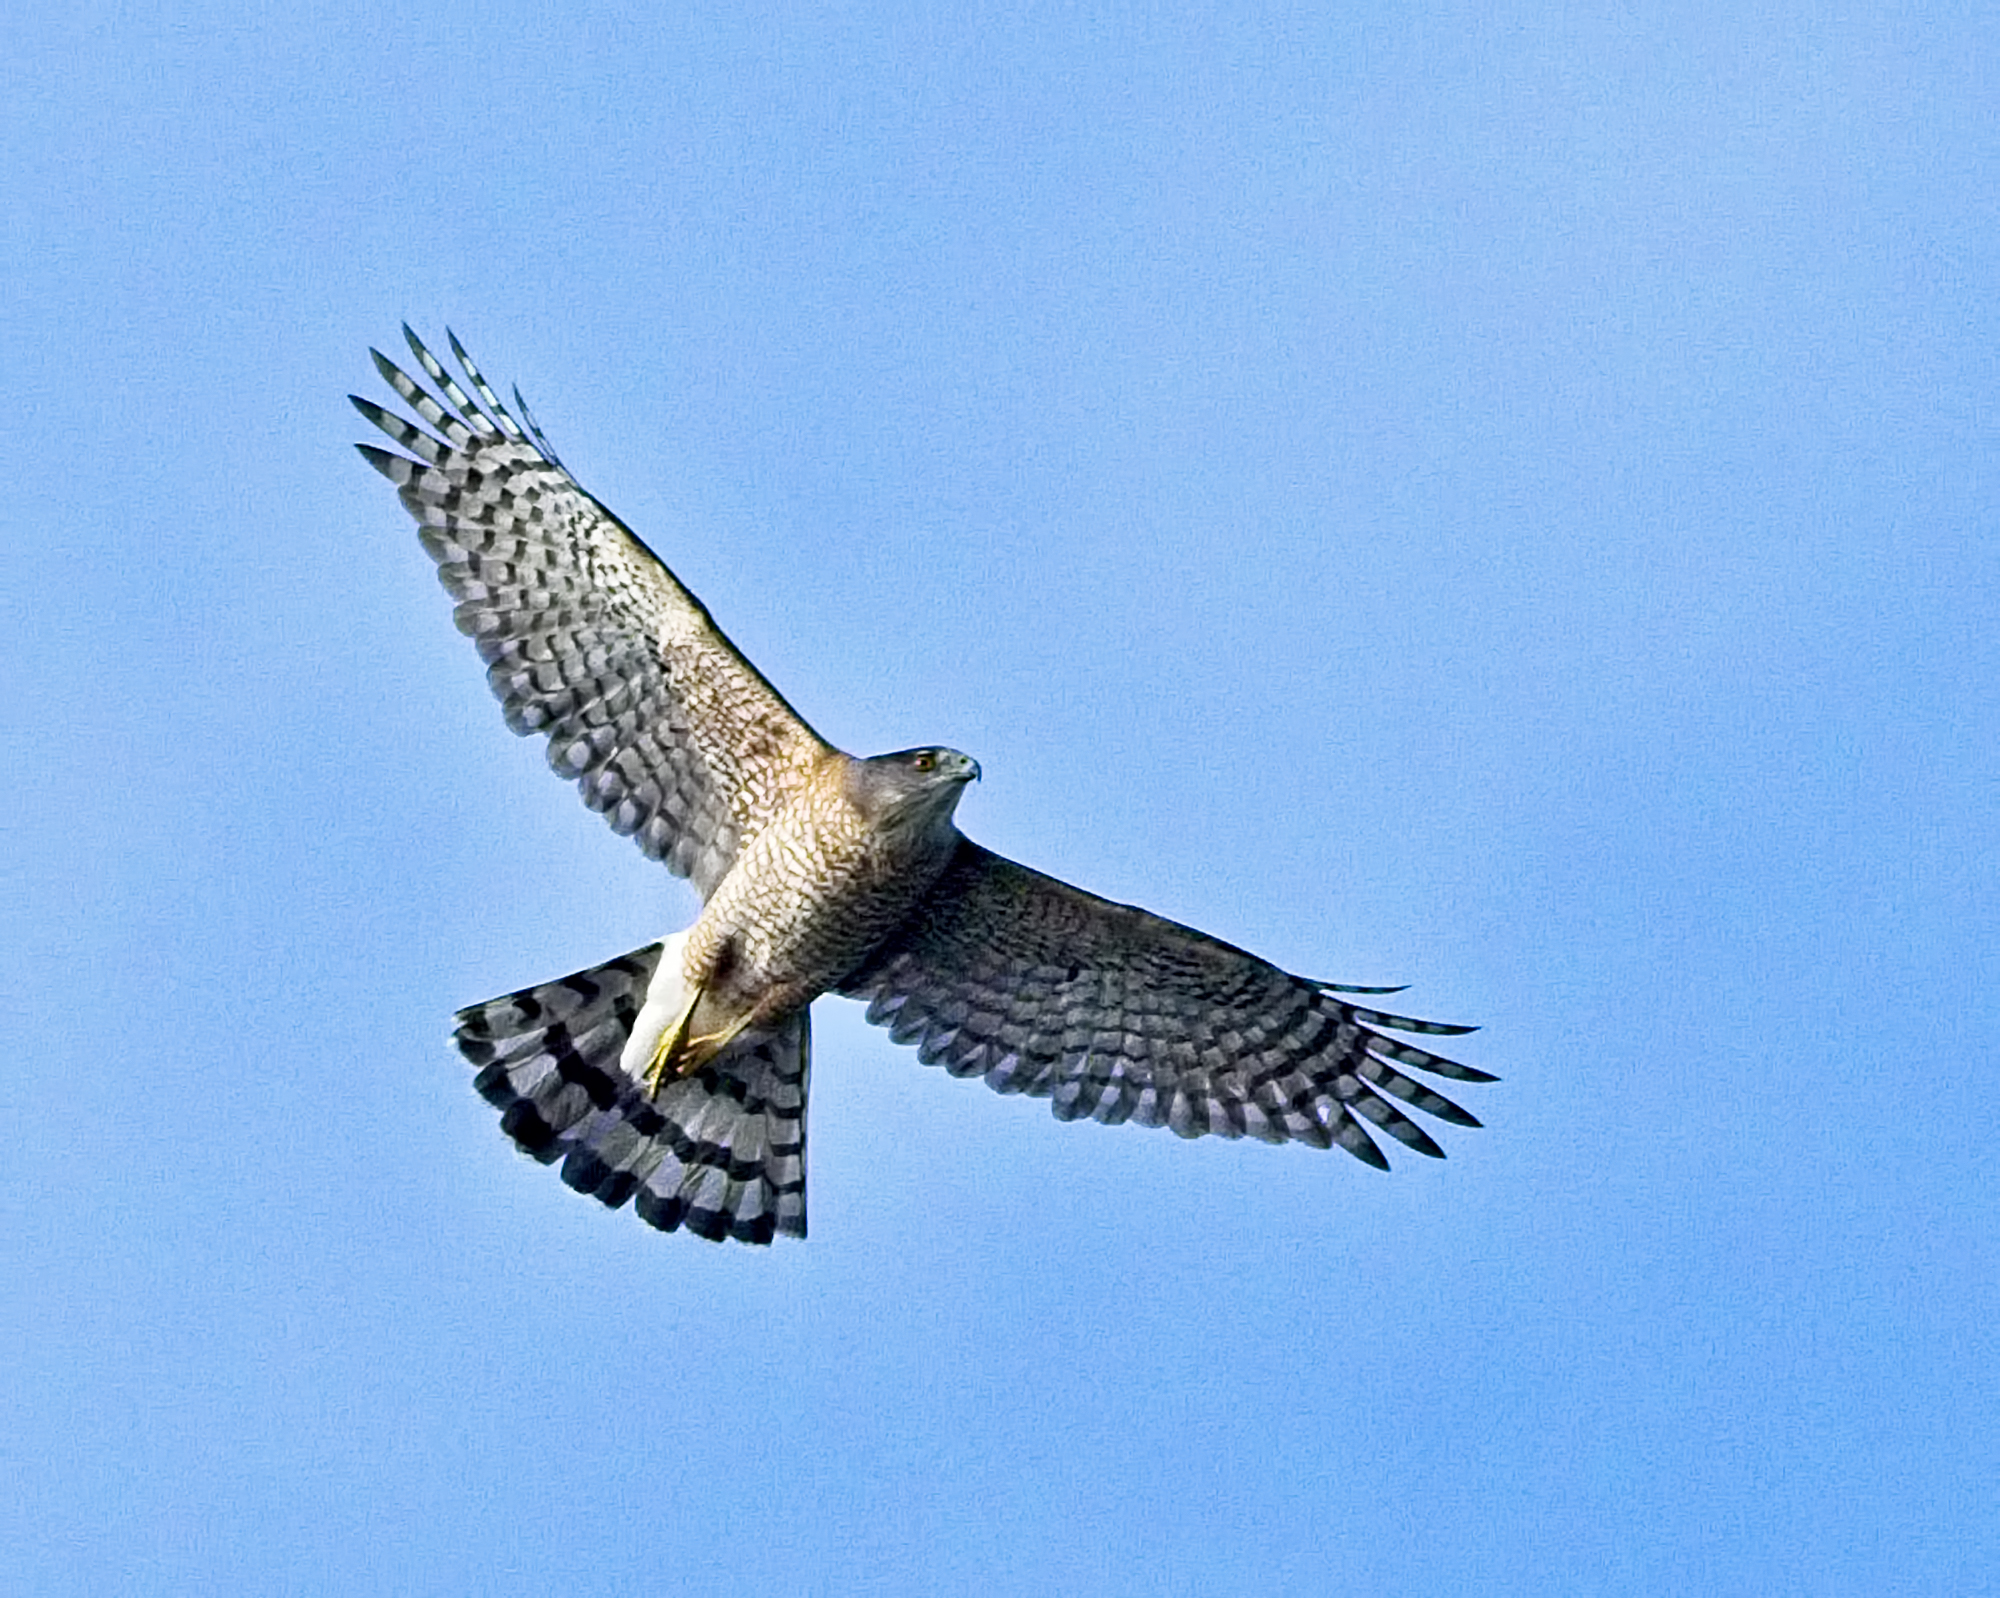 A Coopers Hawk wings overhead